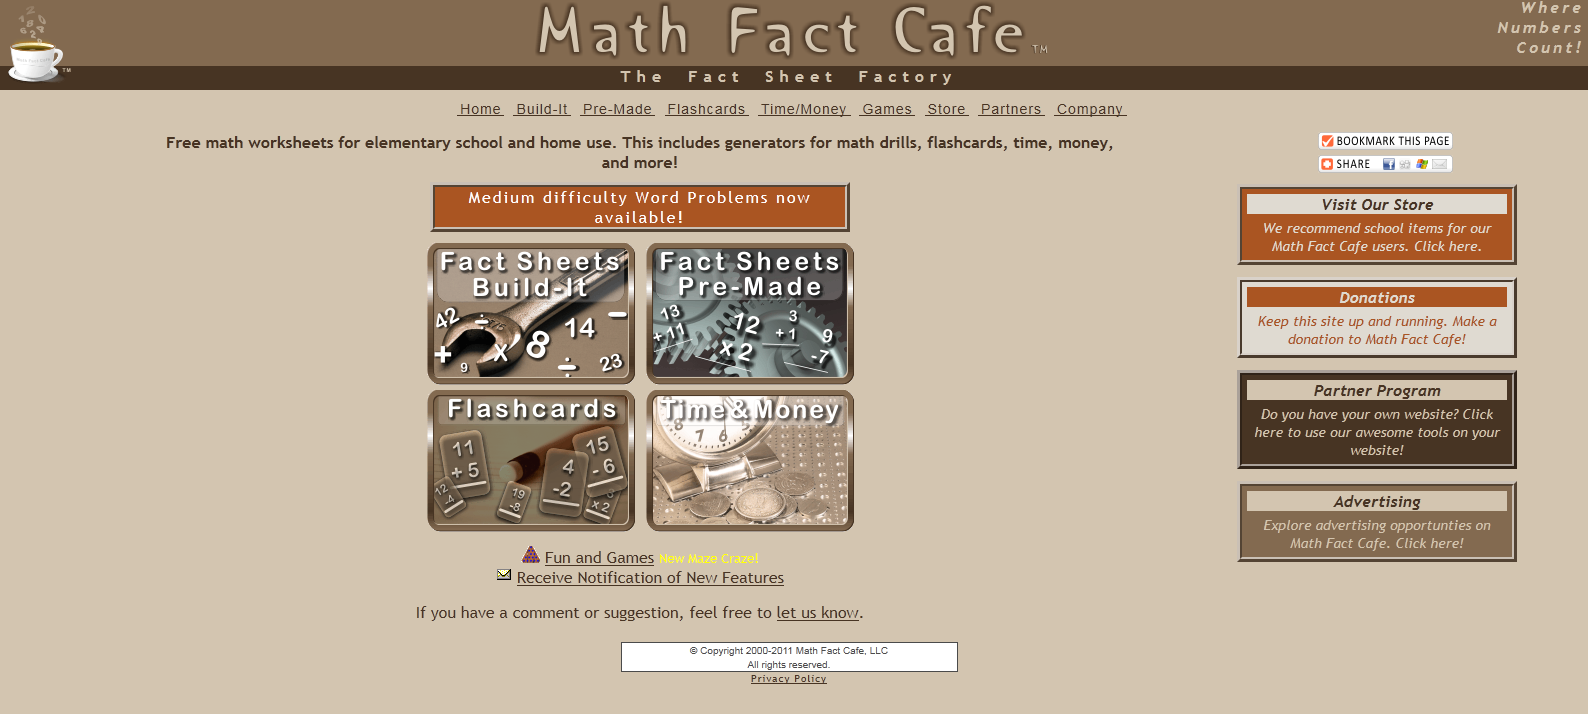 Math Fact Cafe Addition Worksheets addition fast facts – Math Fact Cafe Worksheets